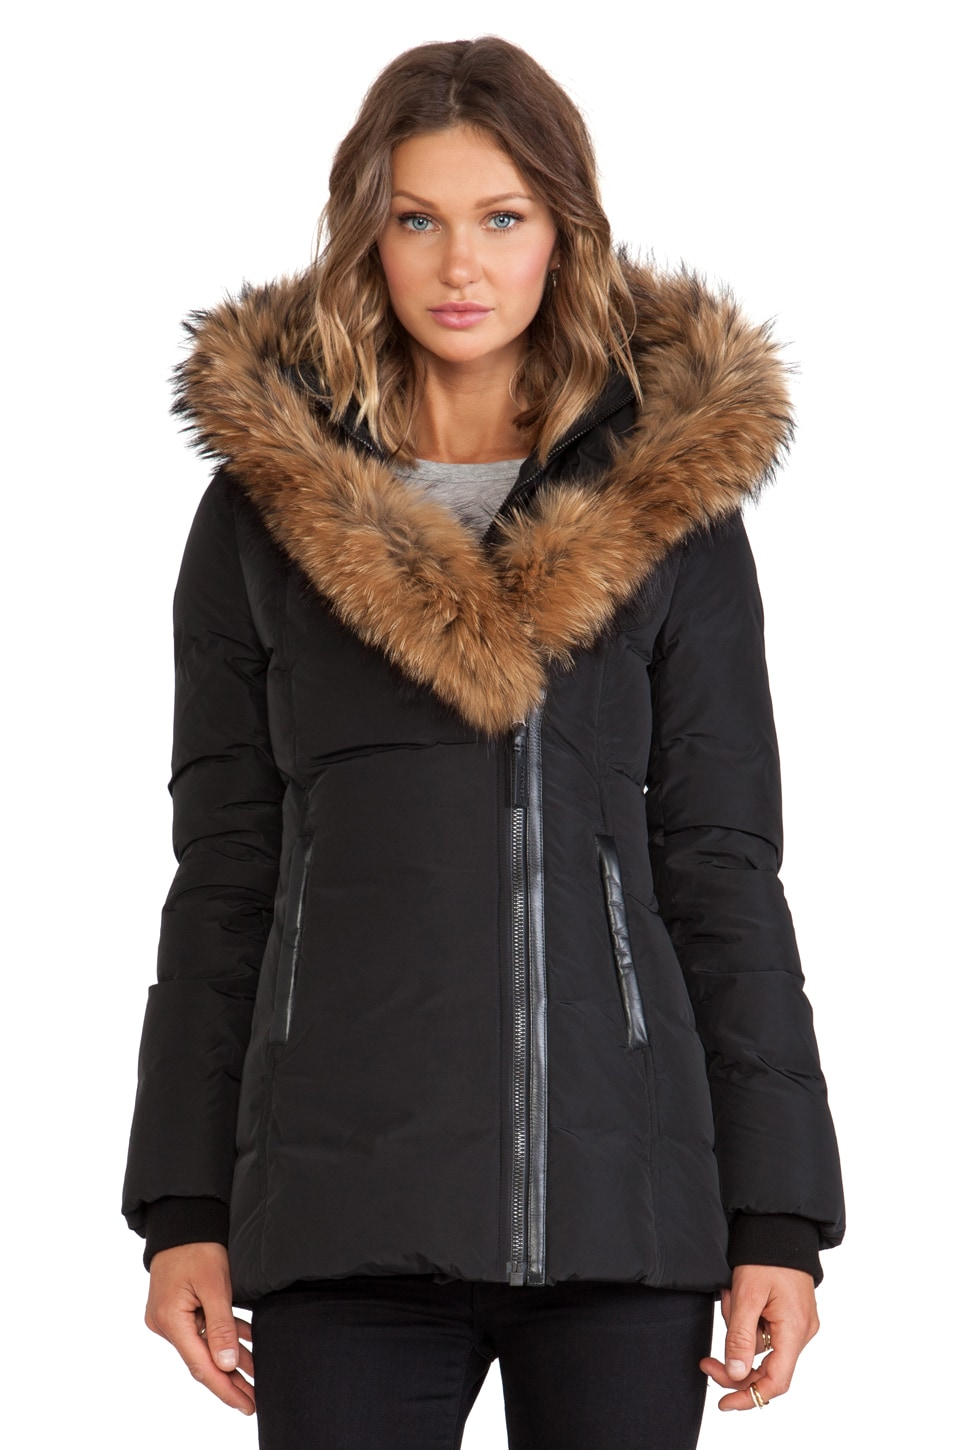 Mackage Adali Jacket With Real Natural Fur in Black